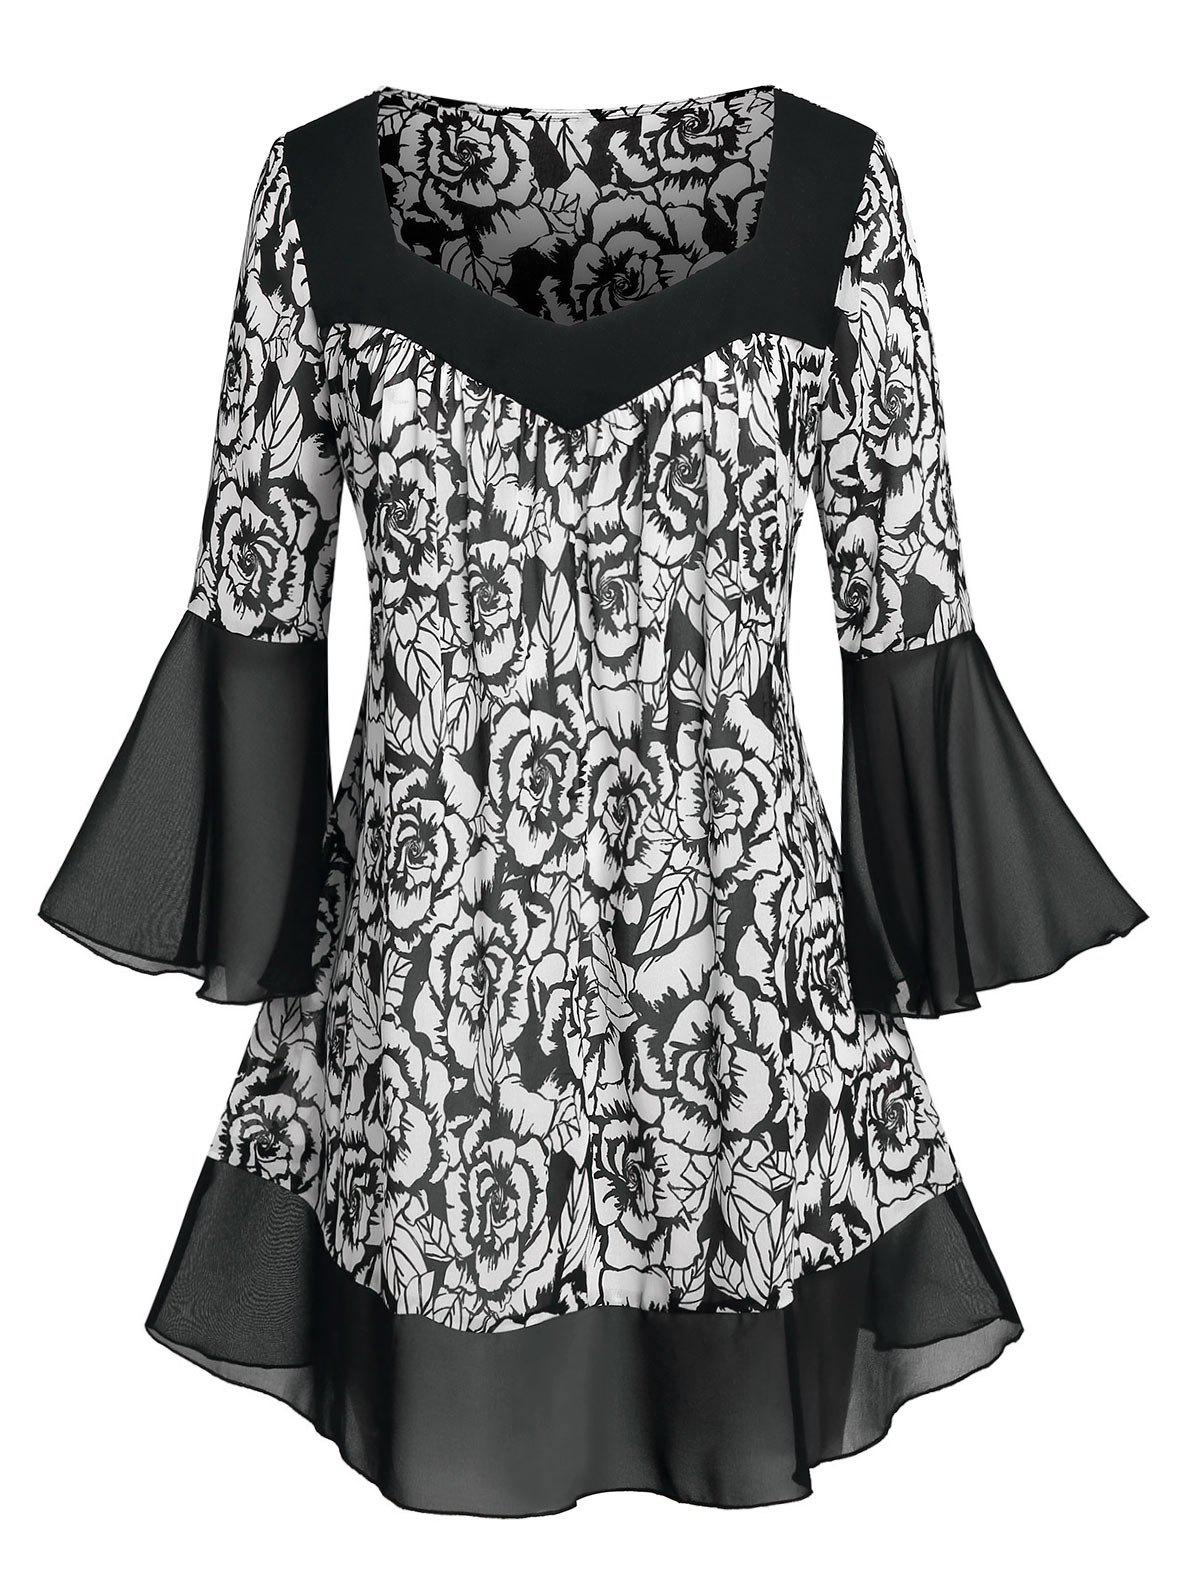 New Plus Size Flower Pattern Flare Sleeve Chiffon Sheer Blouse